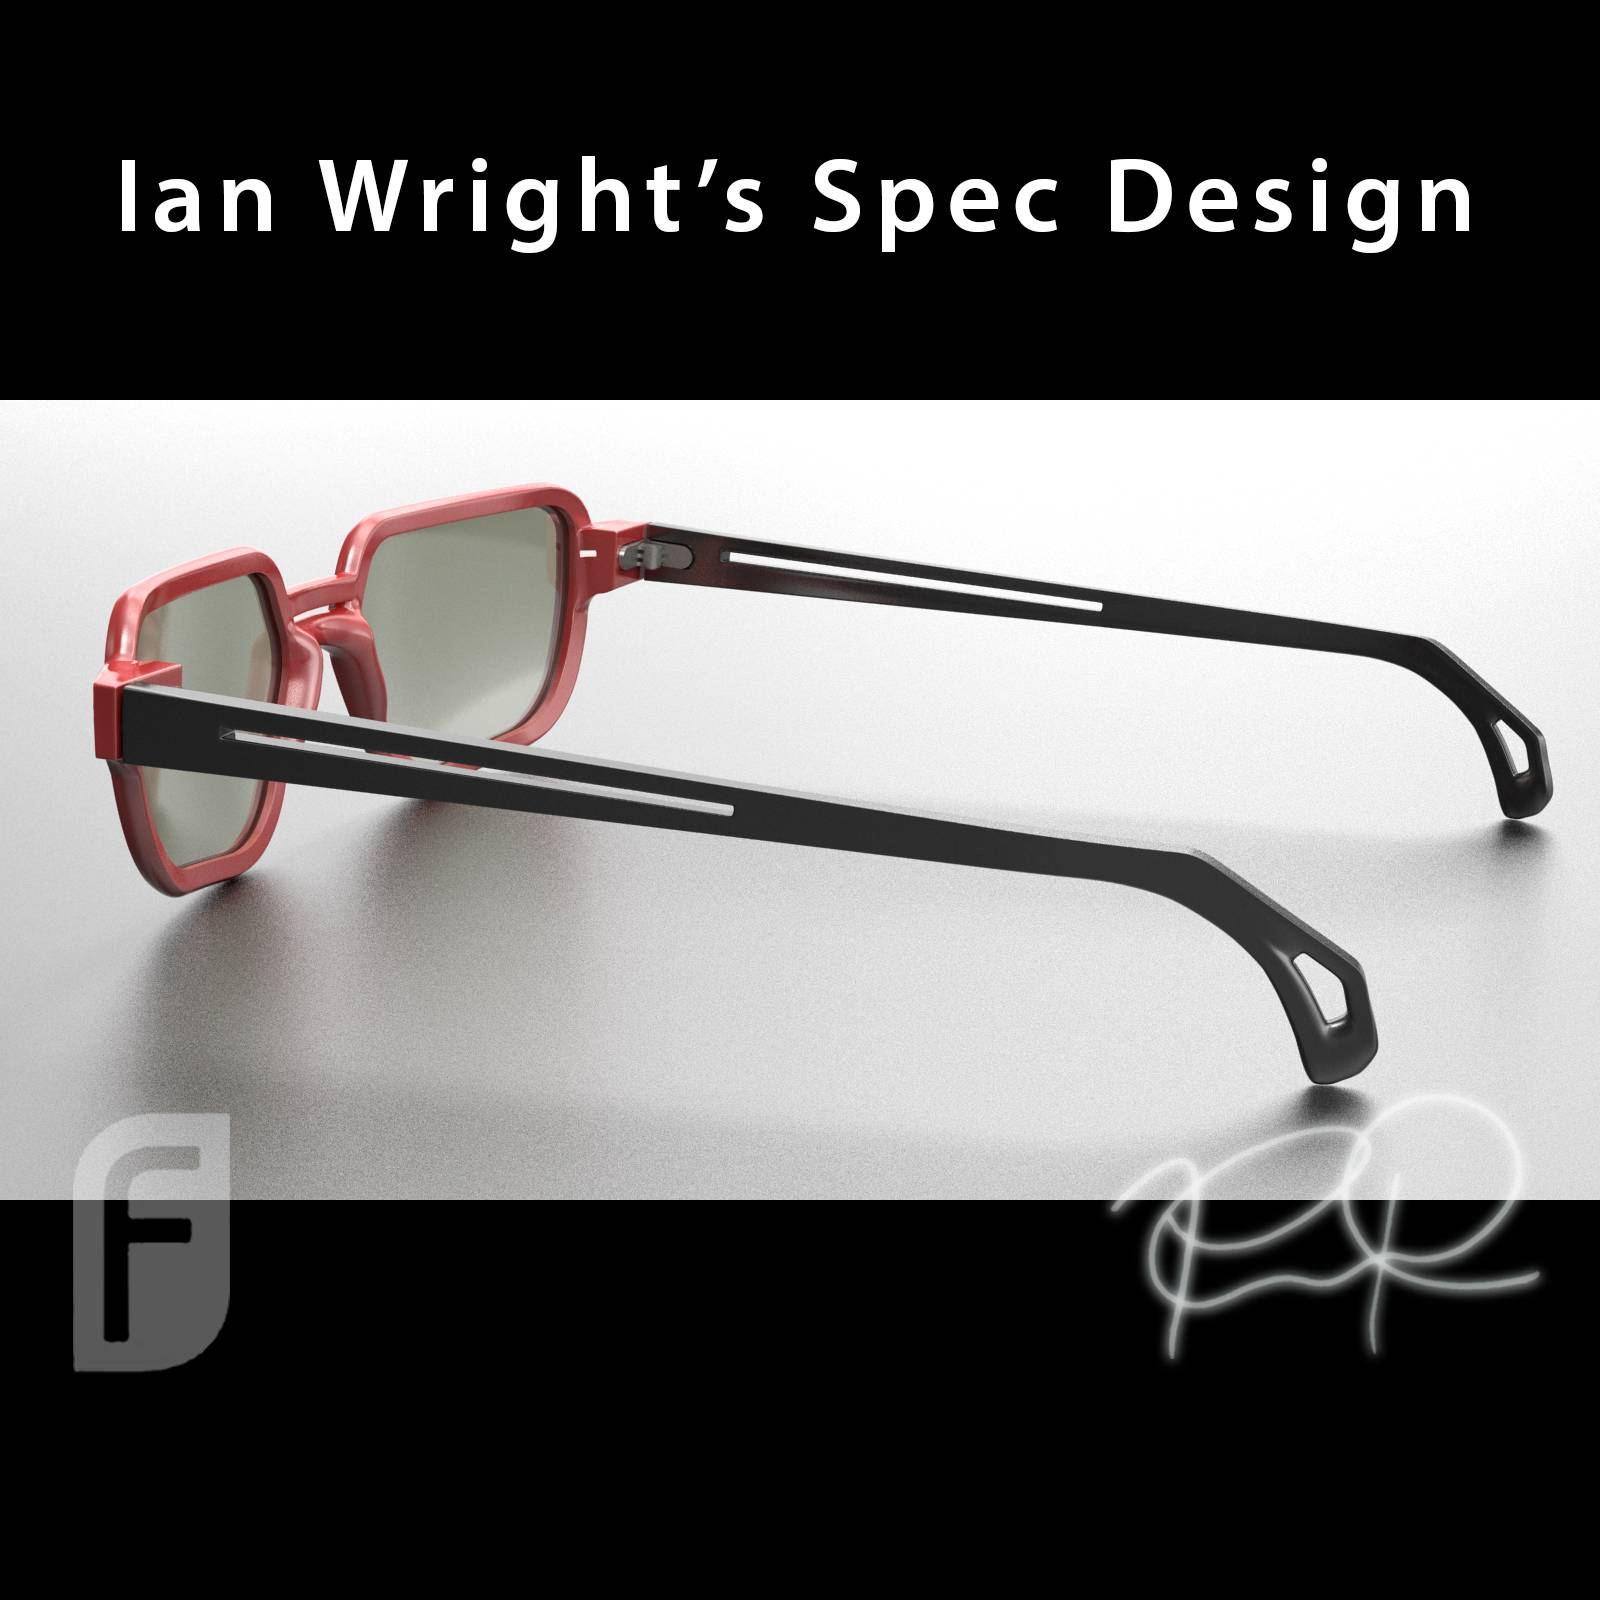 Ian Wright's Specs Side